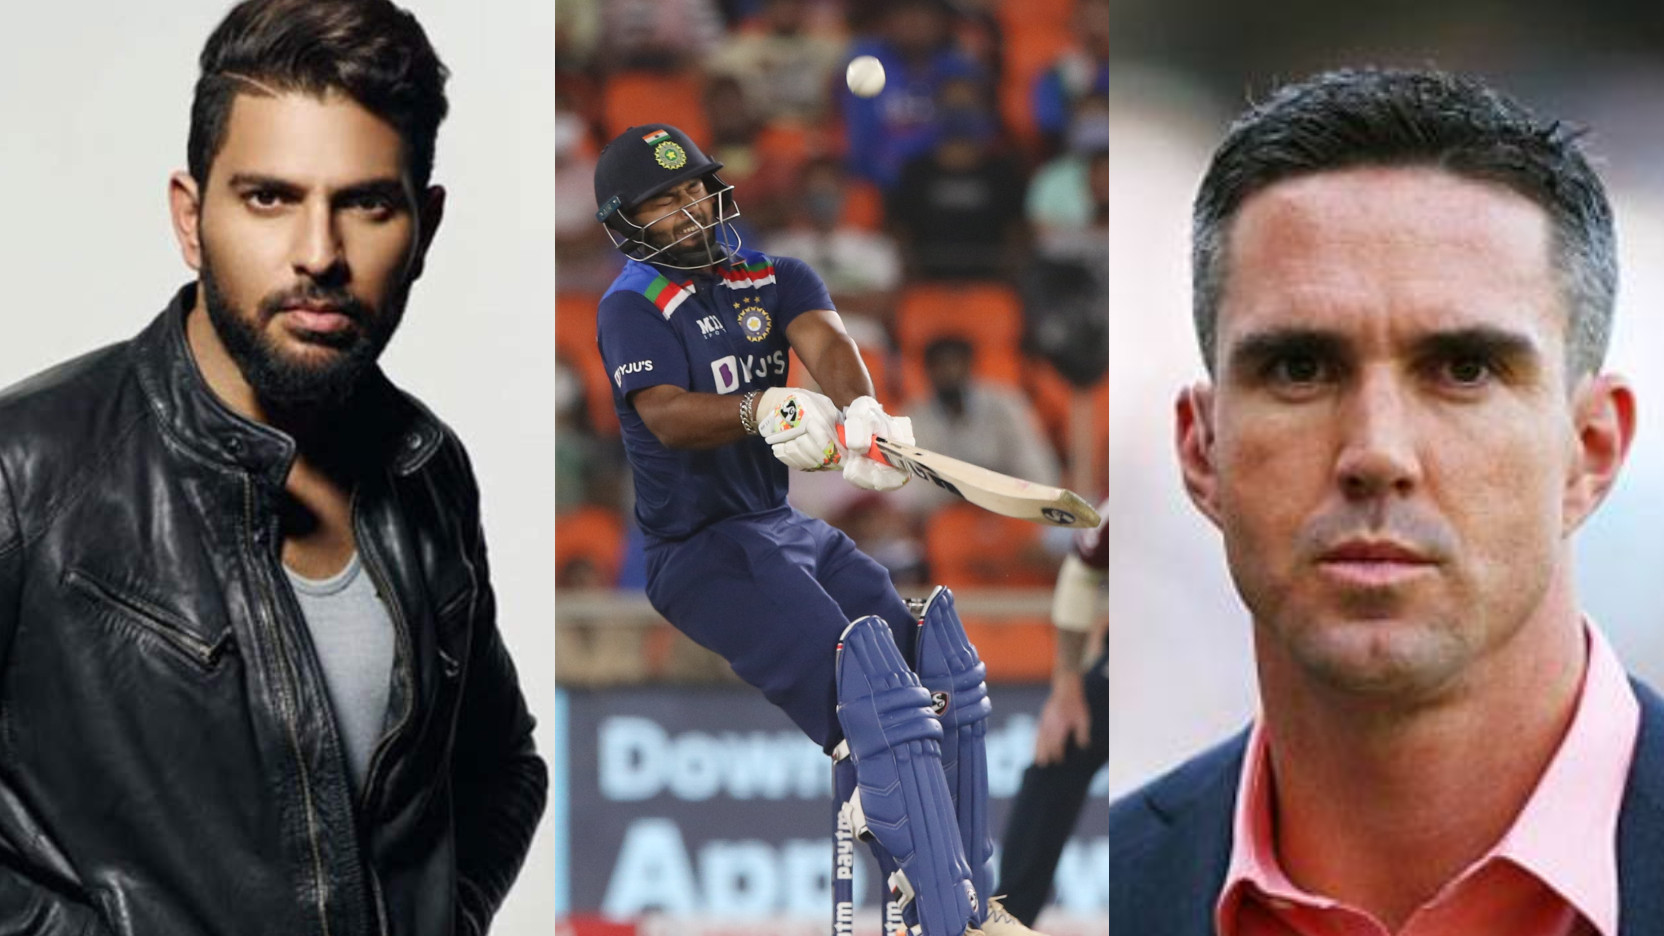 IND v ENG 2021: Cricket fraternity reacts to Rishabh Pant's amazing reverse ramp shot to Jofra Archer